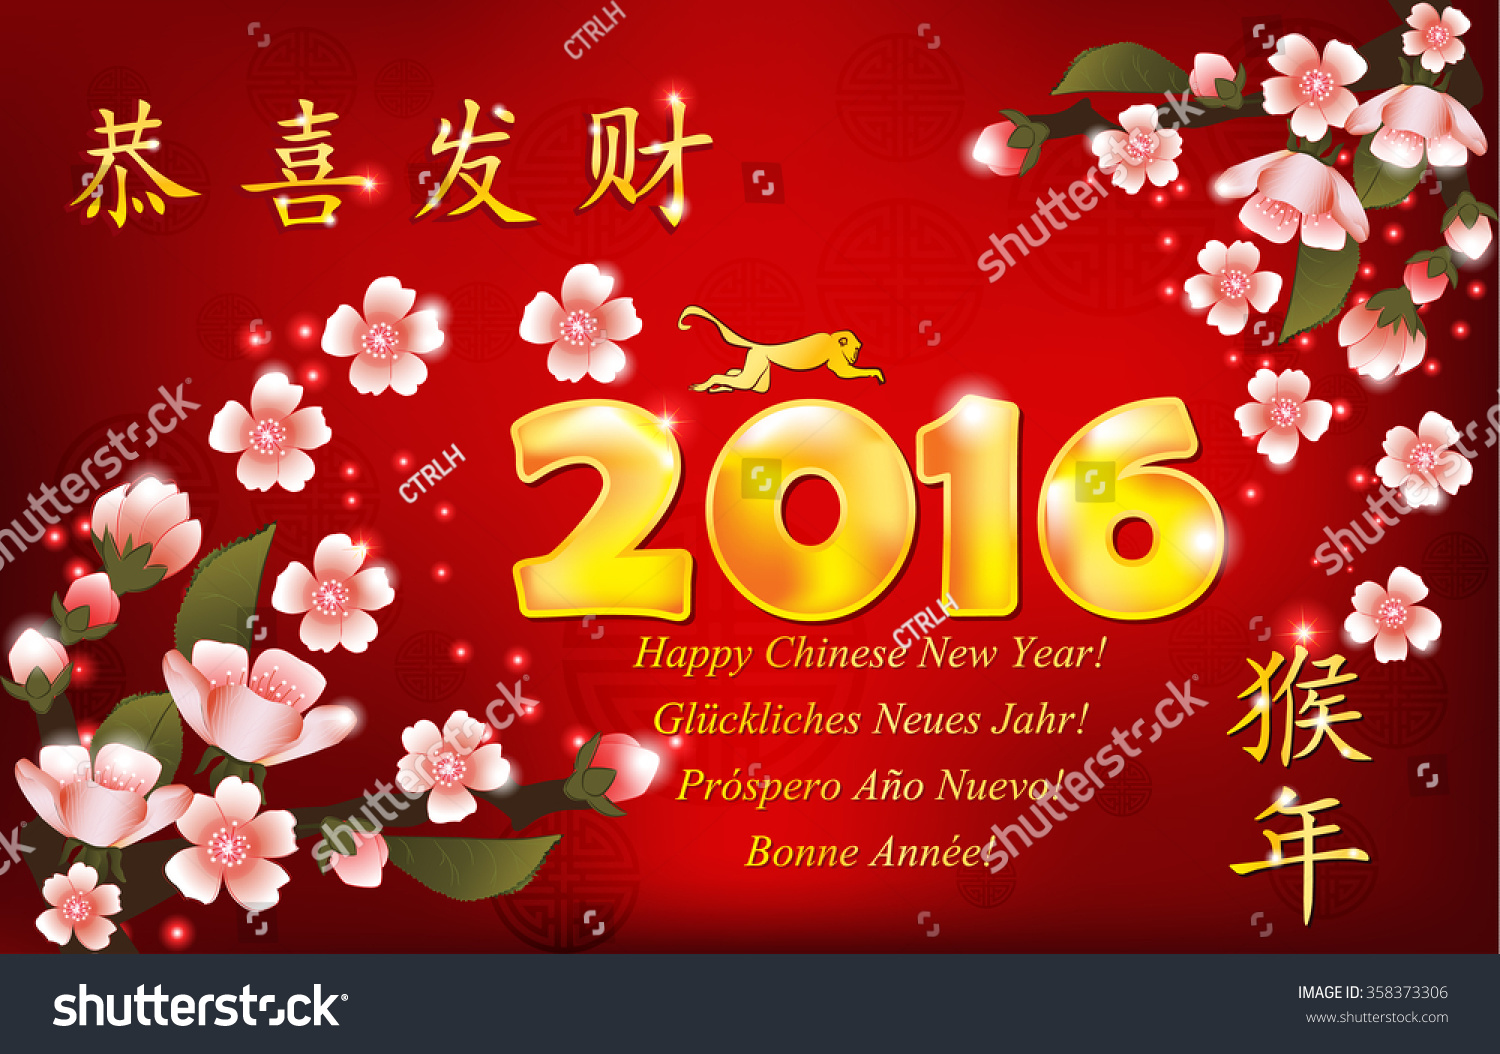 2016 business chinese new year greeting card in many languages text translation happy new